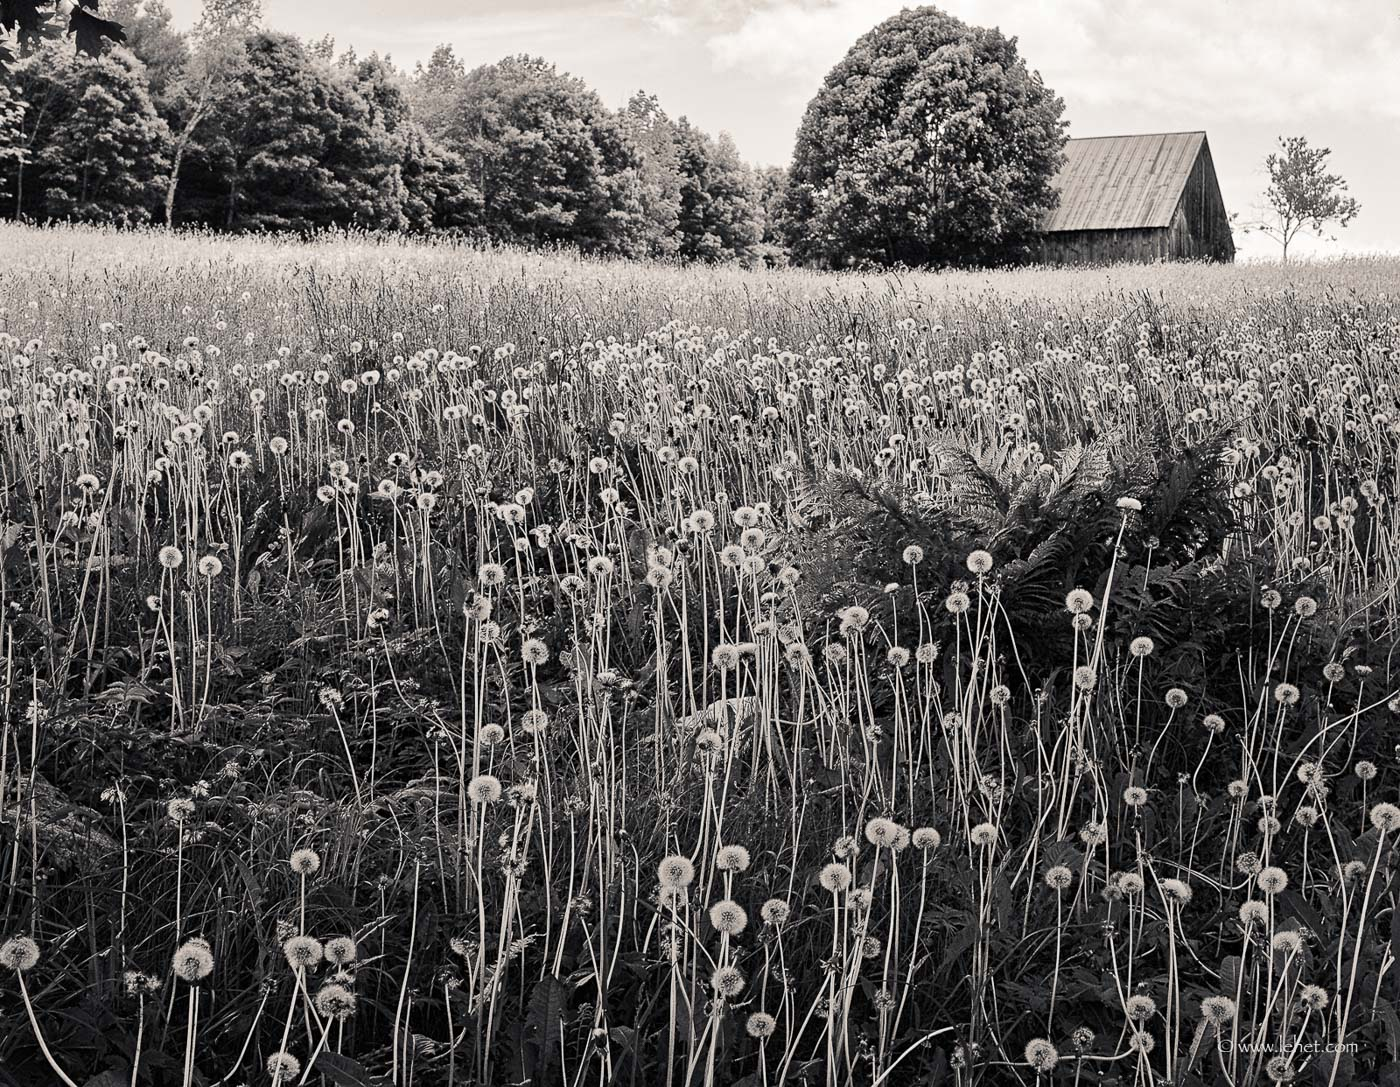 Dandelions and Barn, Vermont